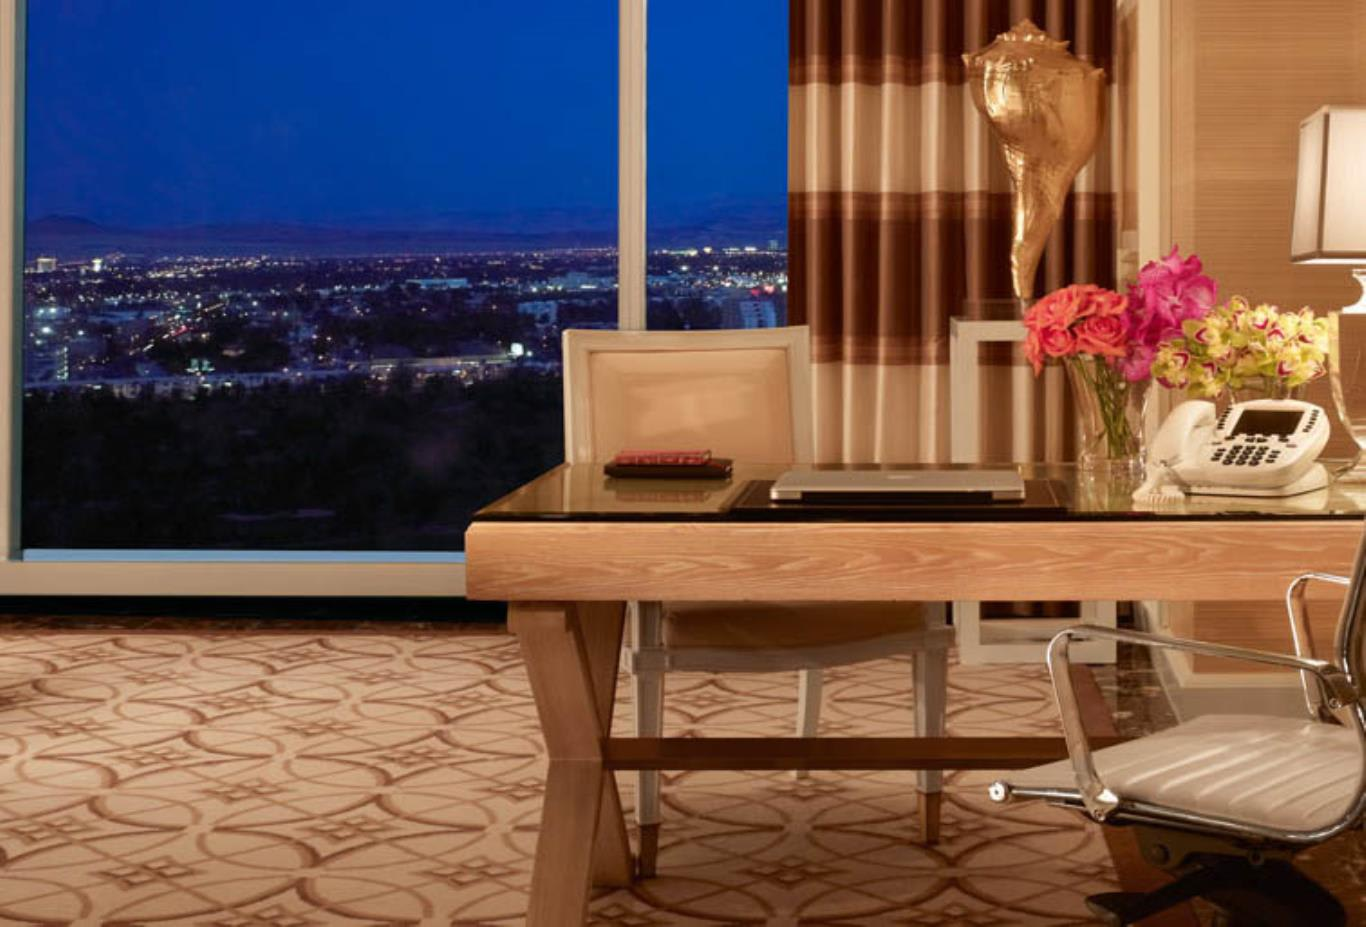 Wynn Parlor Suite Desk with a view